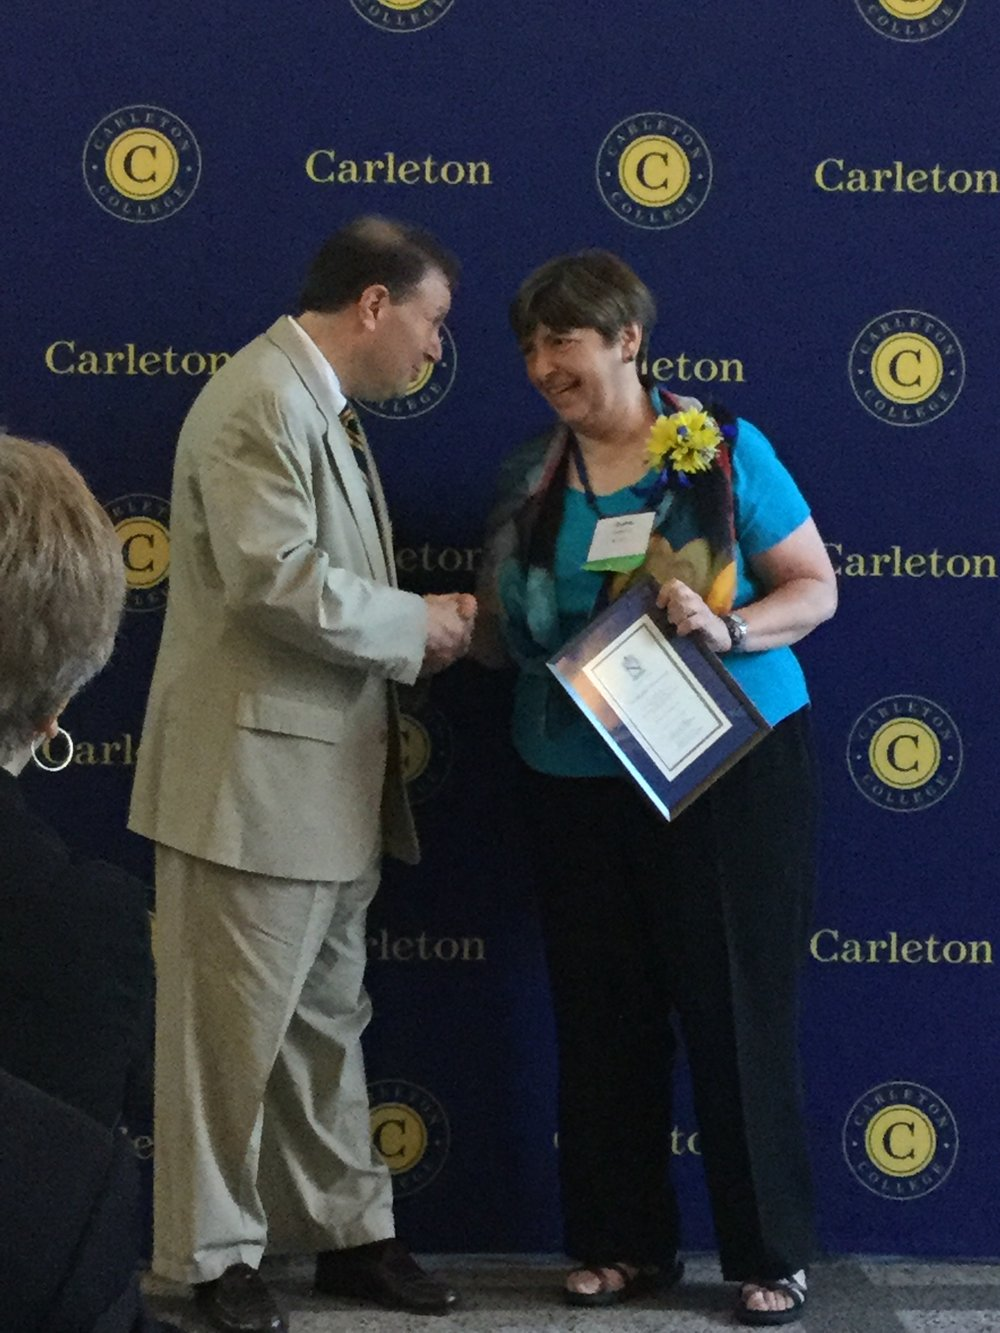 Diane Redleaf received the (Carleton College Distinguished Alumni Achievement Award Celebration in June 2016